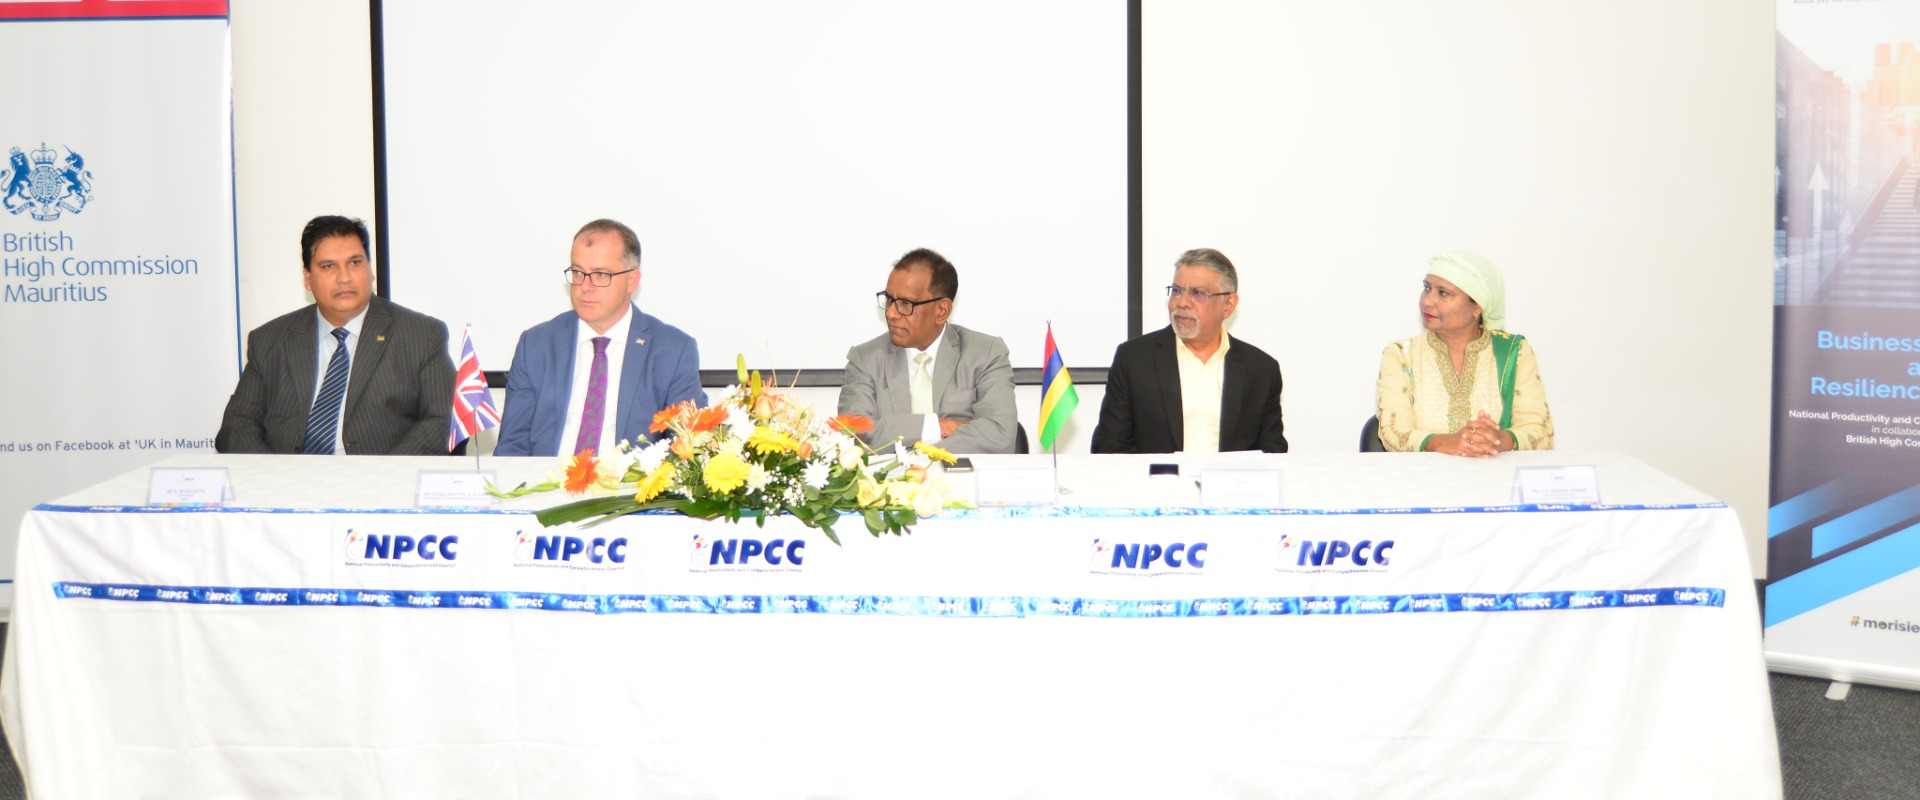 NPCC launches Business Continuity and Resilience Planning programme for local companies